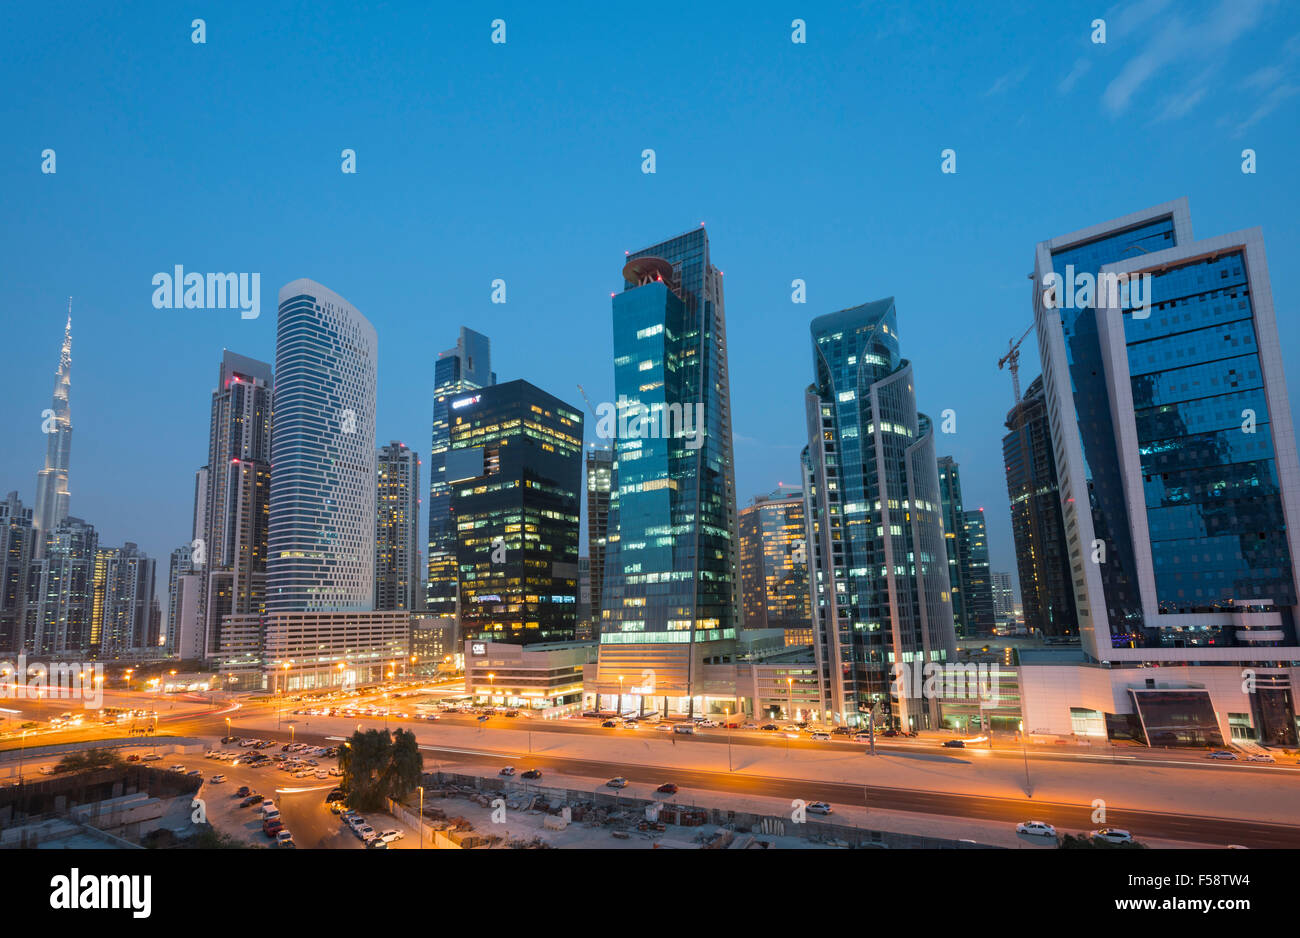 Skyline of new office towers at night  in Business Bay district of Dubai United Arab Emirates - Stock Image